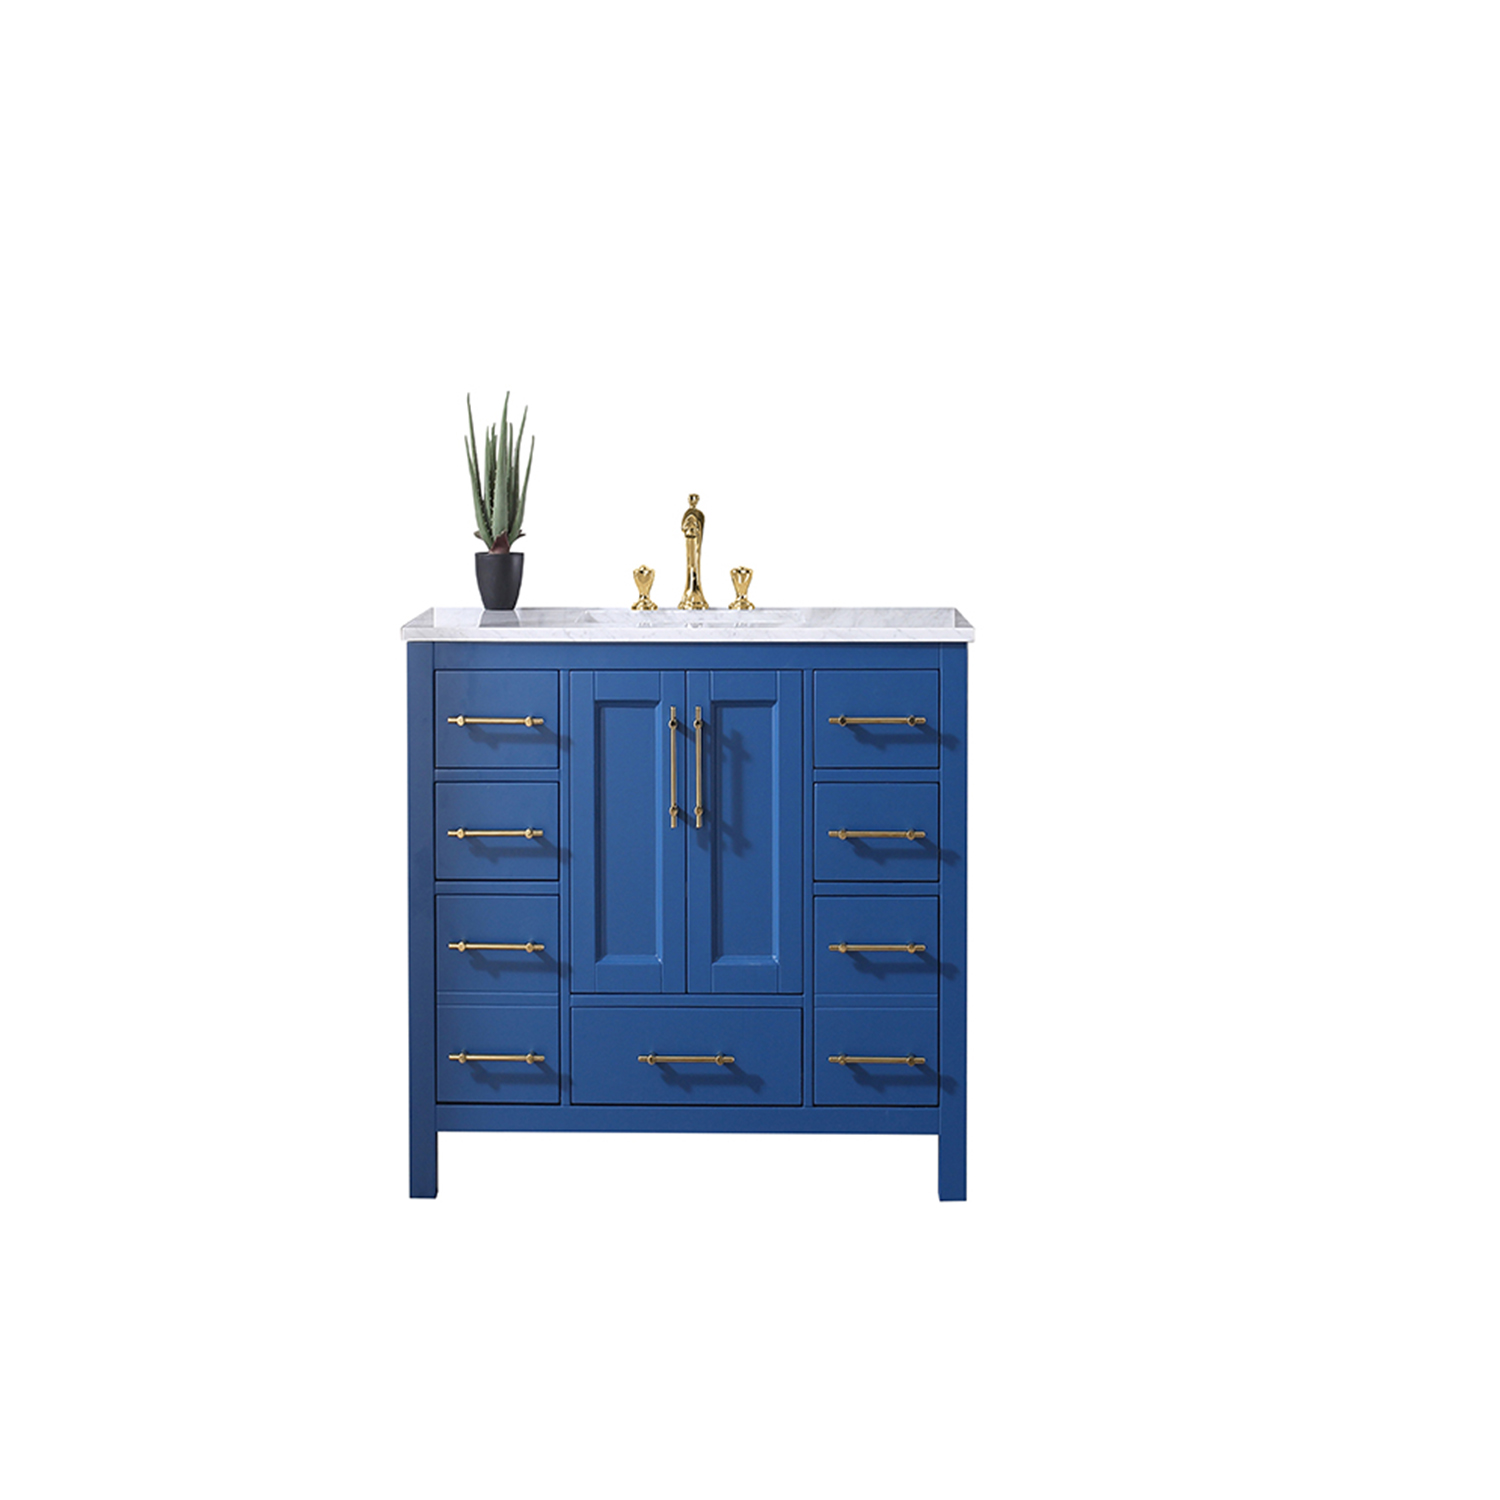 EVVN413 42BLU A Main - Eviva Navy 42 inch Deep Blue Bathroom Vanity with White Carrera Counter-top and White Undermount Porcelain Sink